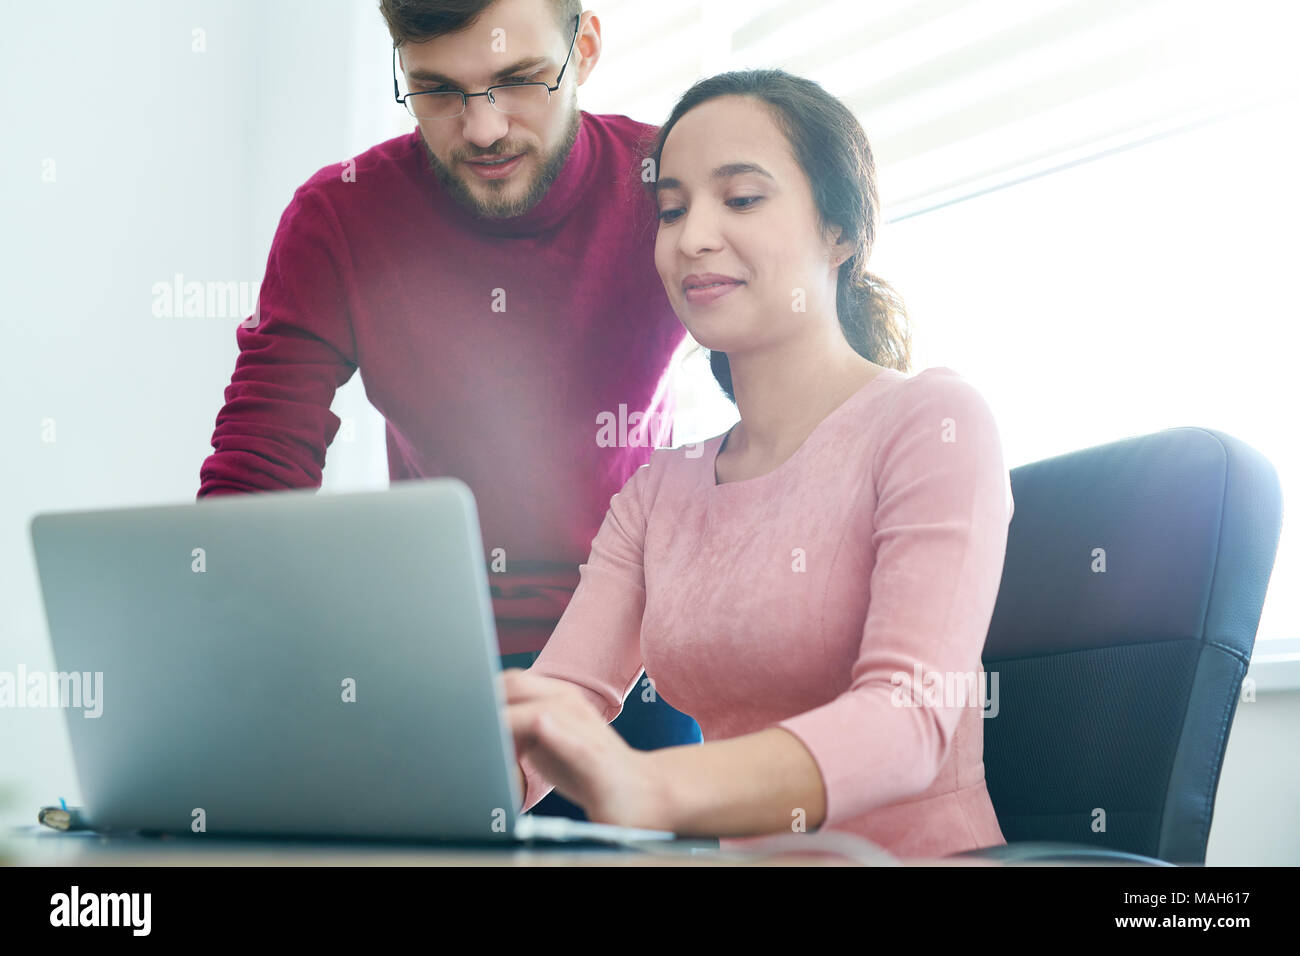 Pleased team composing electronic letter for business partner - Stock Image